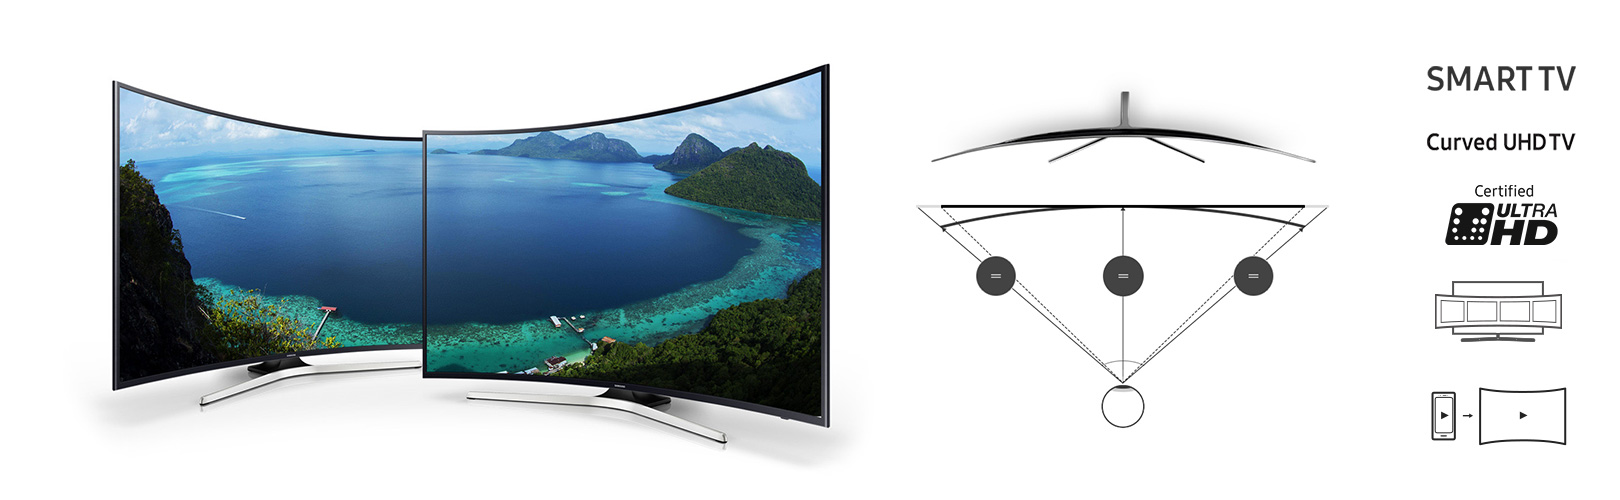 €439 Samsung Smart TV 40''